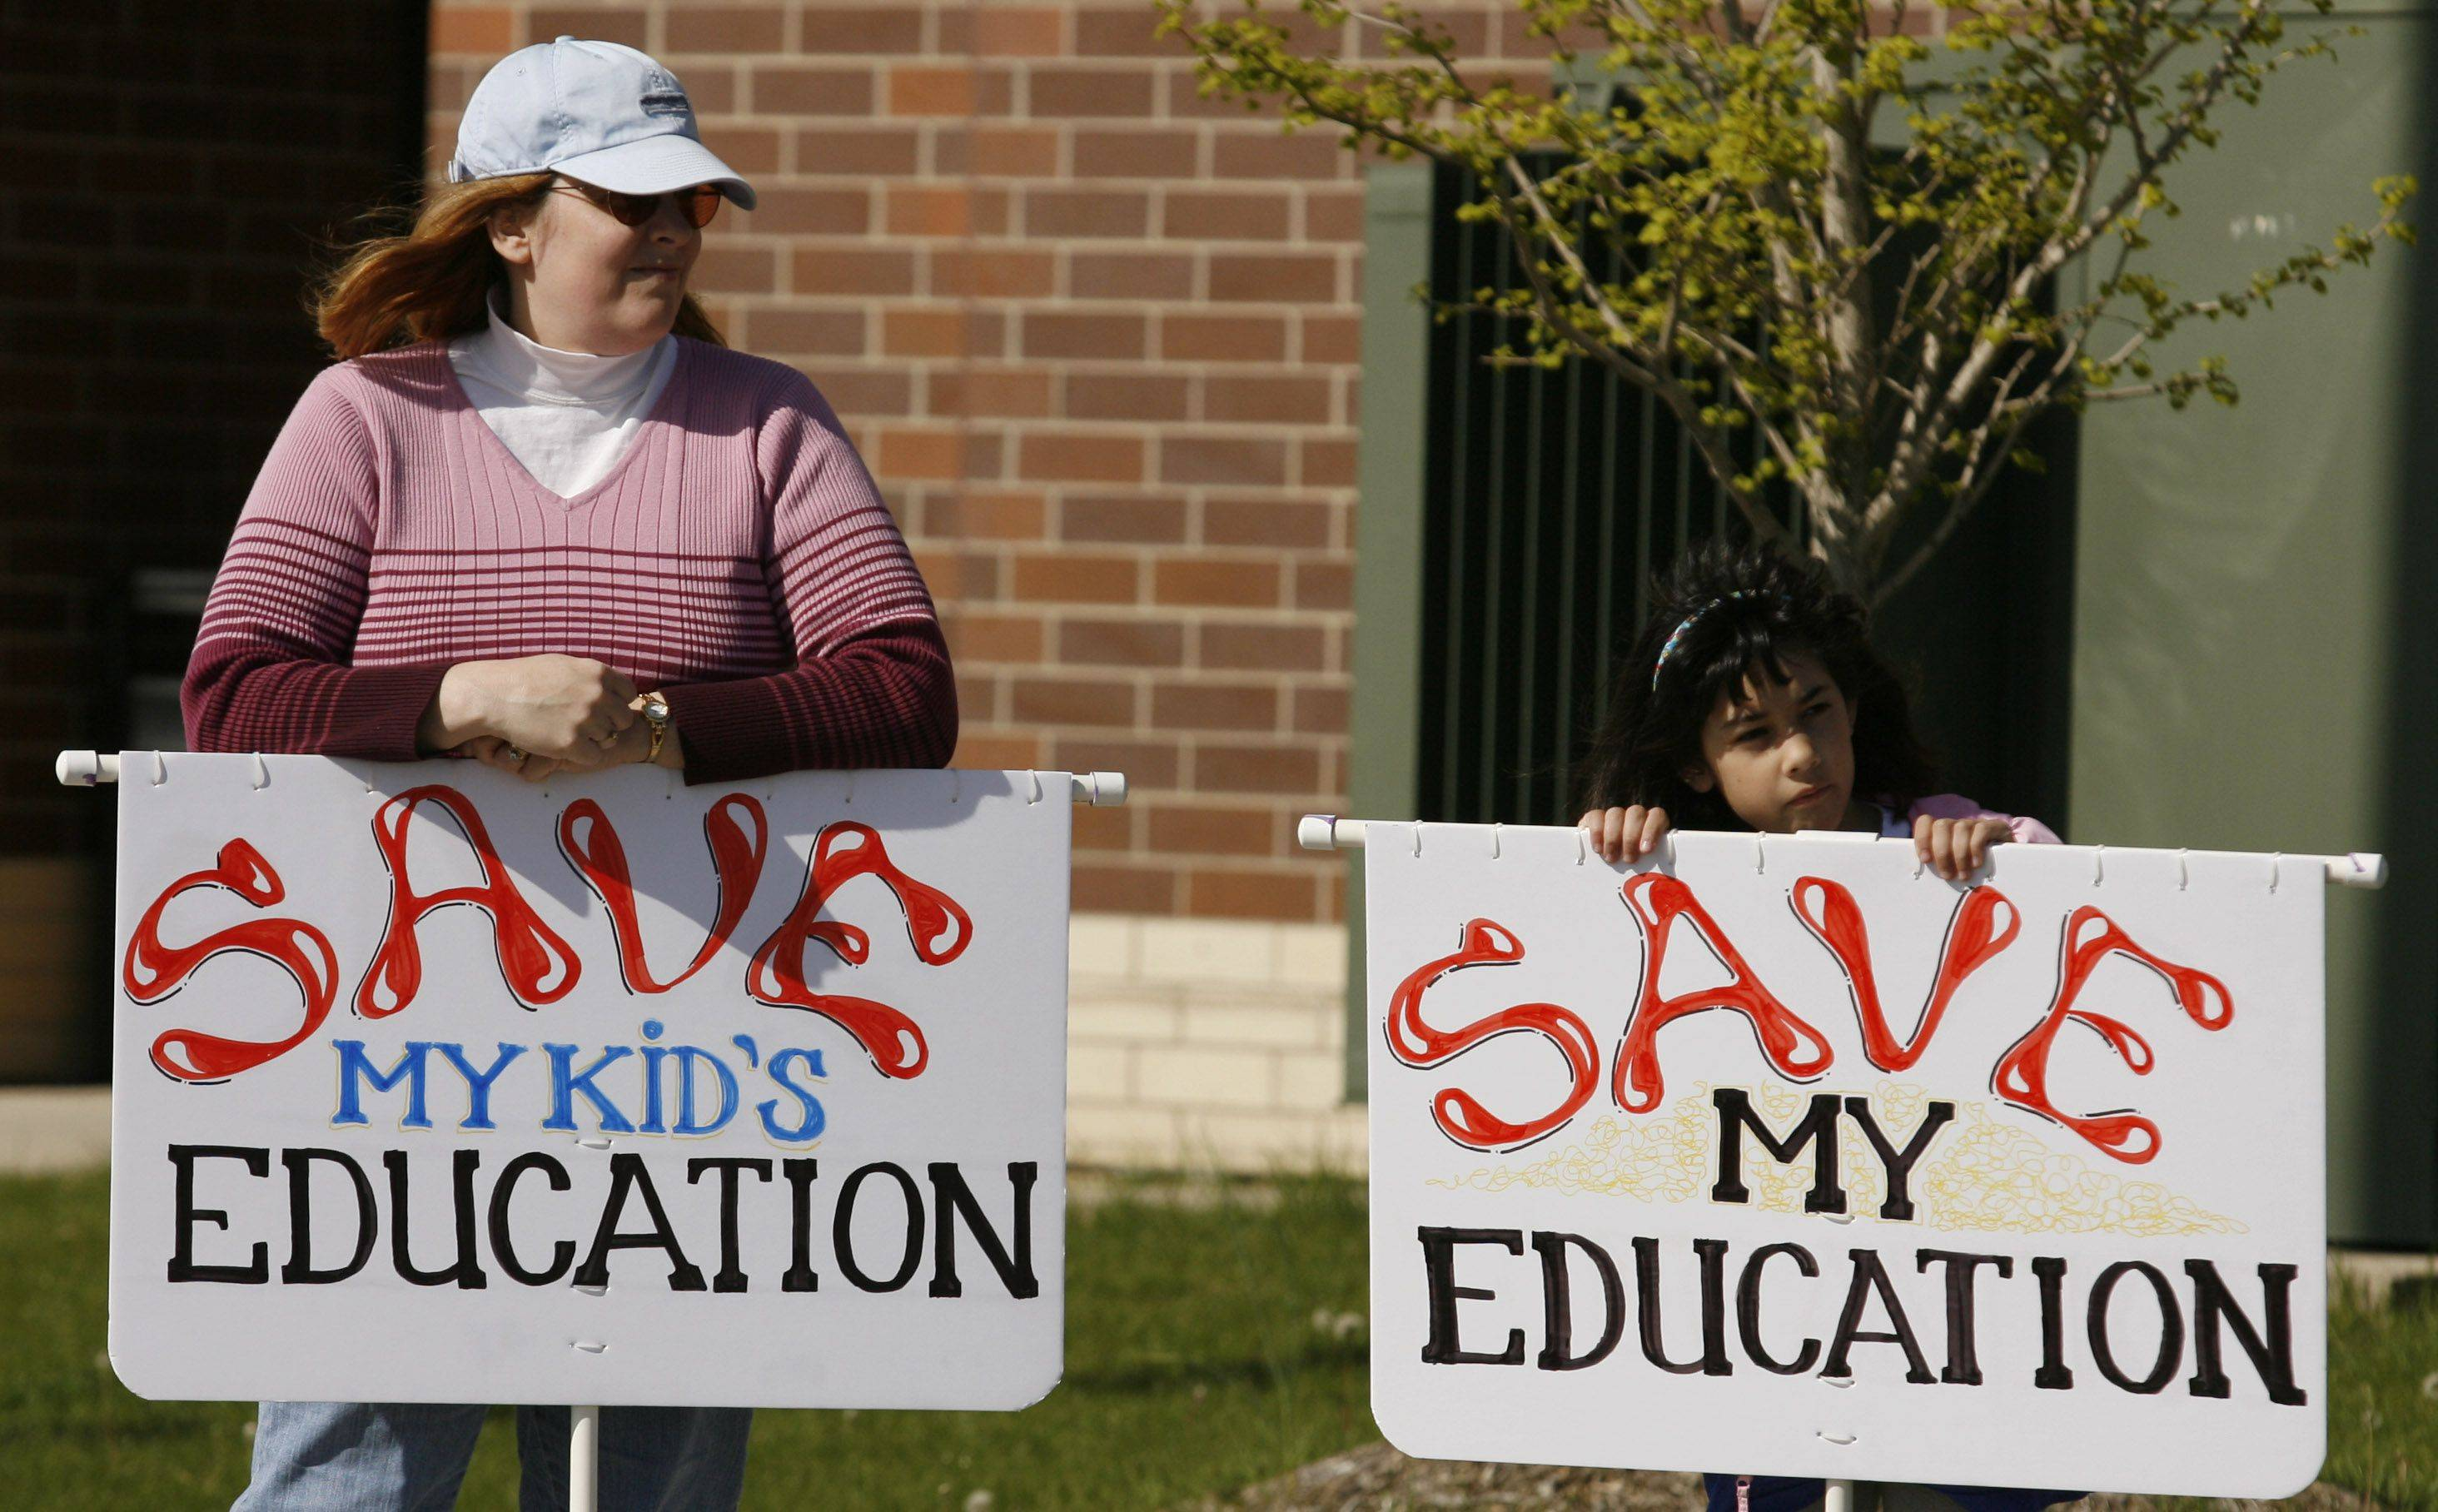 CHRISTOPHER HANKINS/chankins@dailyherald.com � Debbie Pangilinan and her daughter Angel, a third grader at Nature Ridge Elementary School in Bartlett, show their support for education funding rally at South Elgin High School.